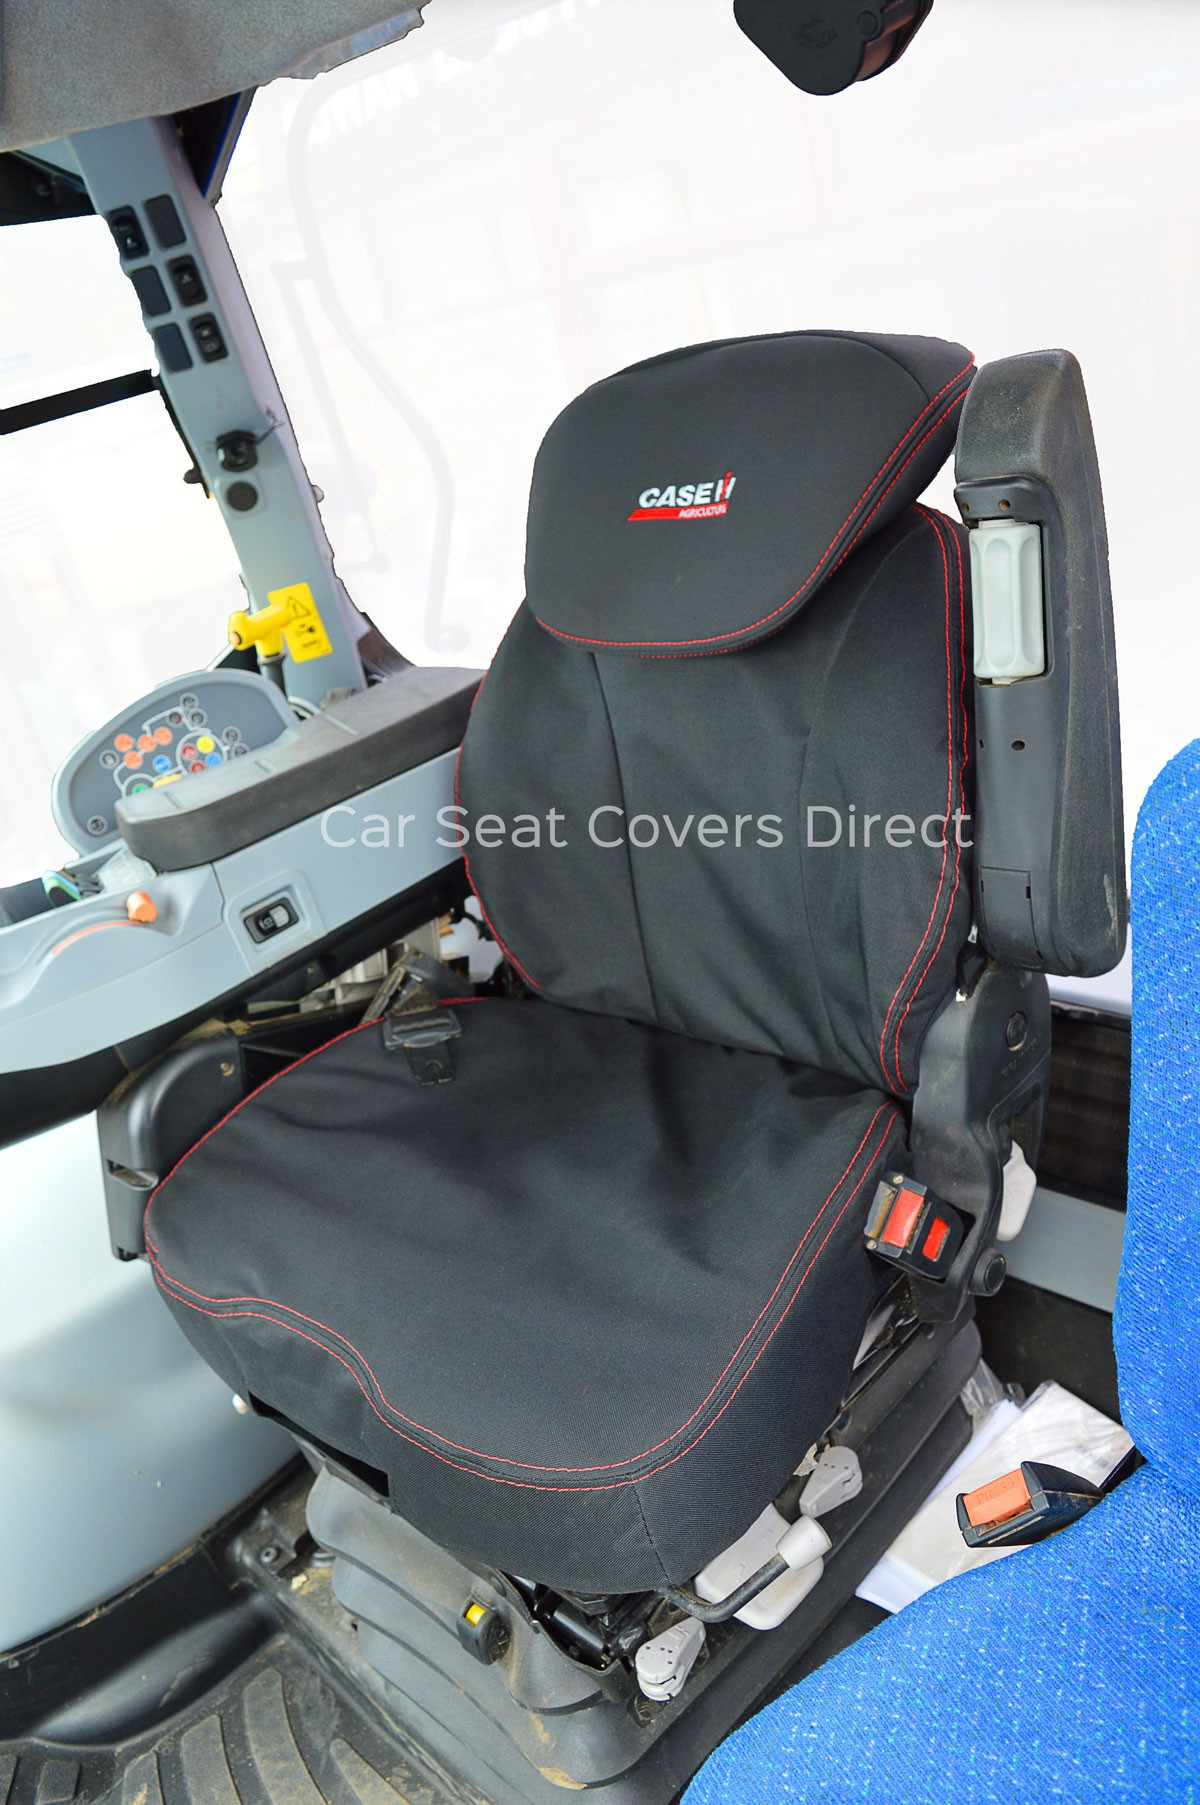 Tractor Seat And Seat Covers : Custom tractor tailored seat covers car direct